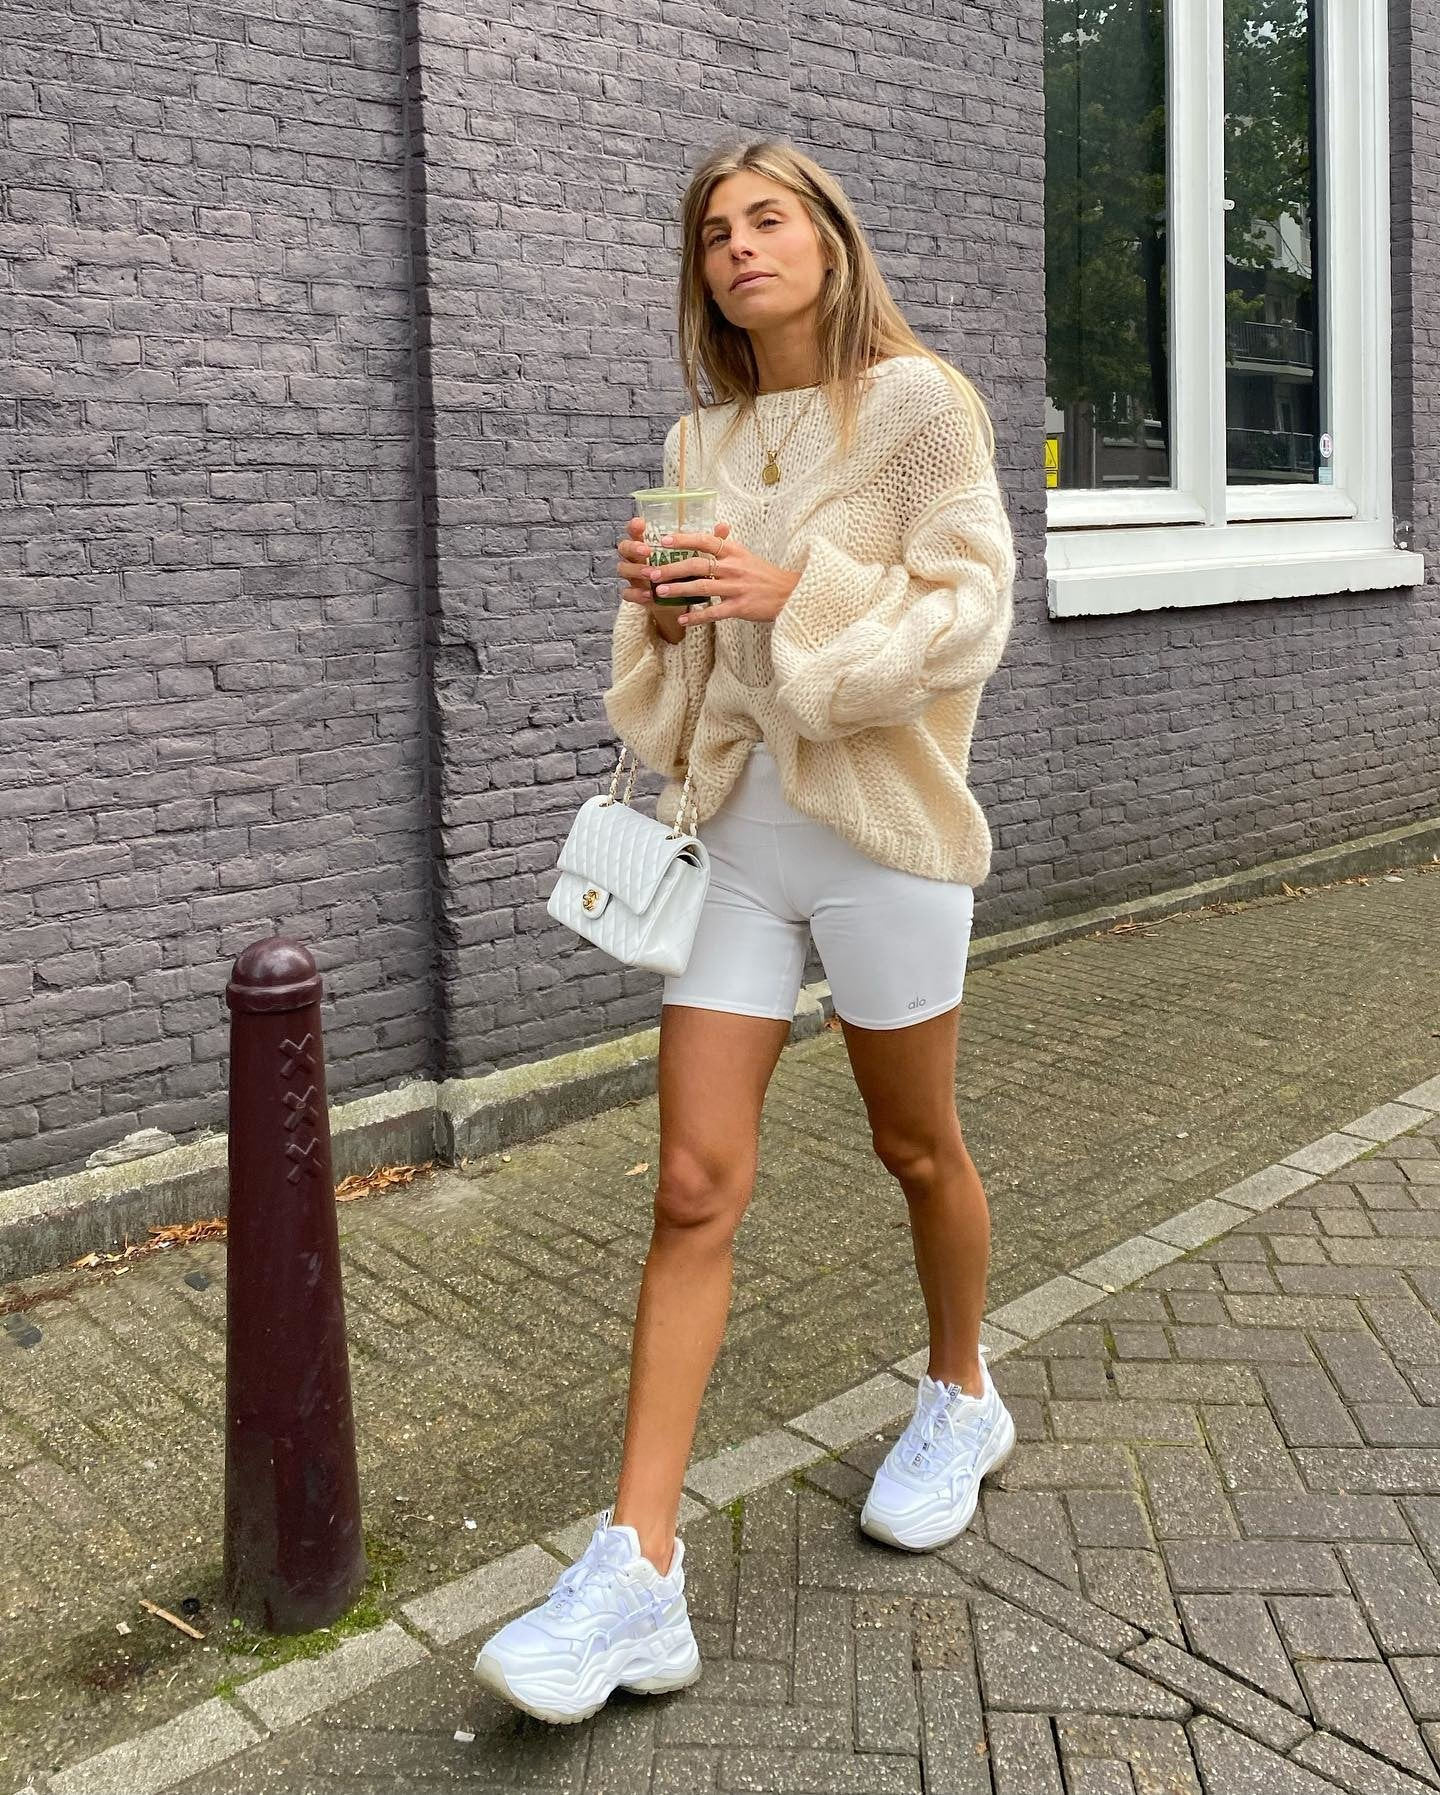 @debiflue wearing White High-Waist Biker Shorts with an oversized nude sweater, chunky white sneakers, a designer handbag, and a coffee while walking around town.